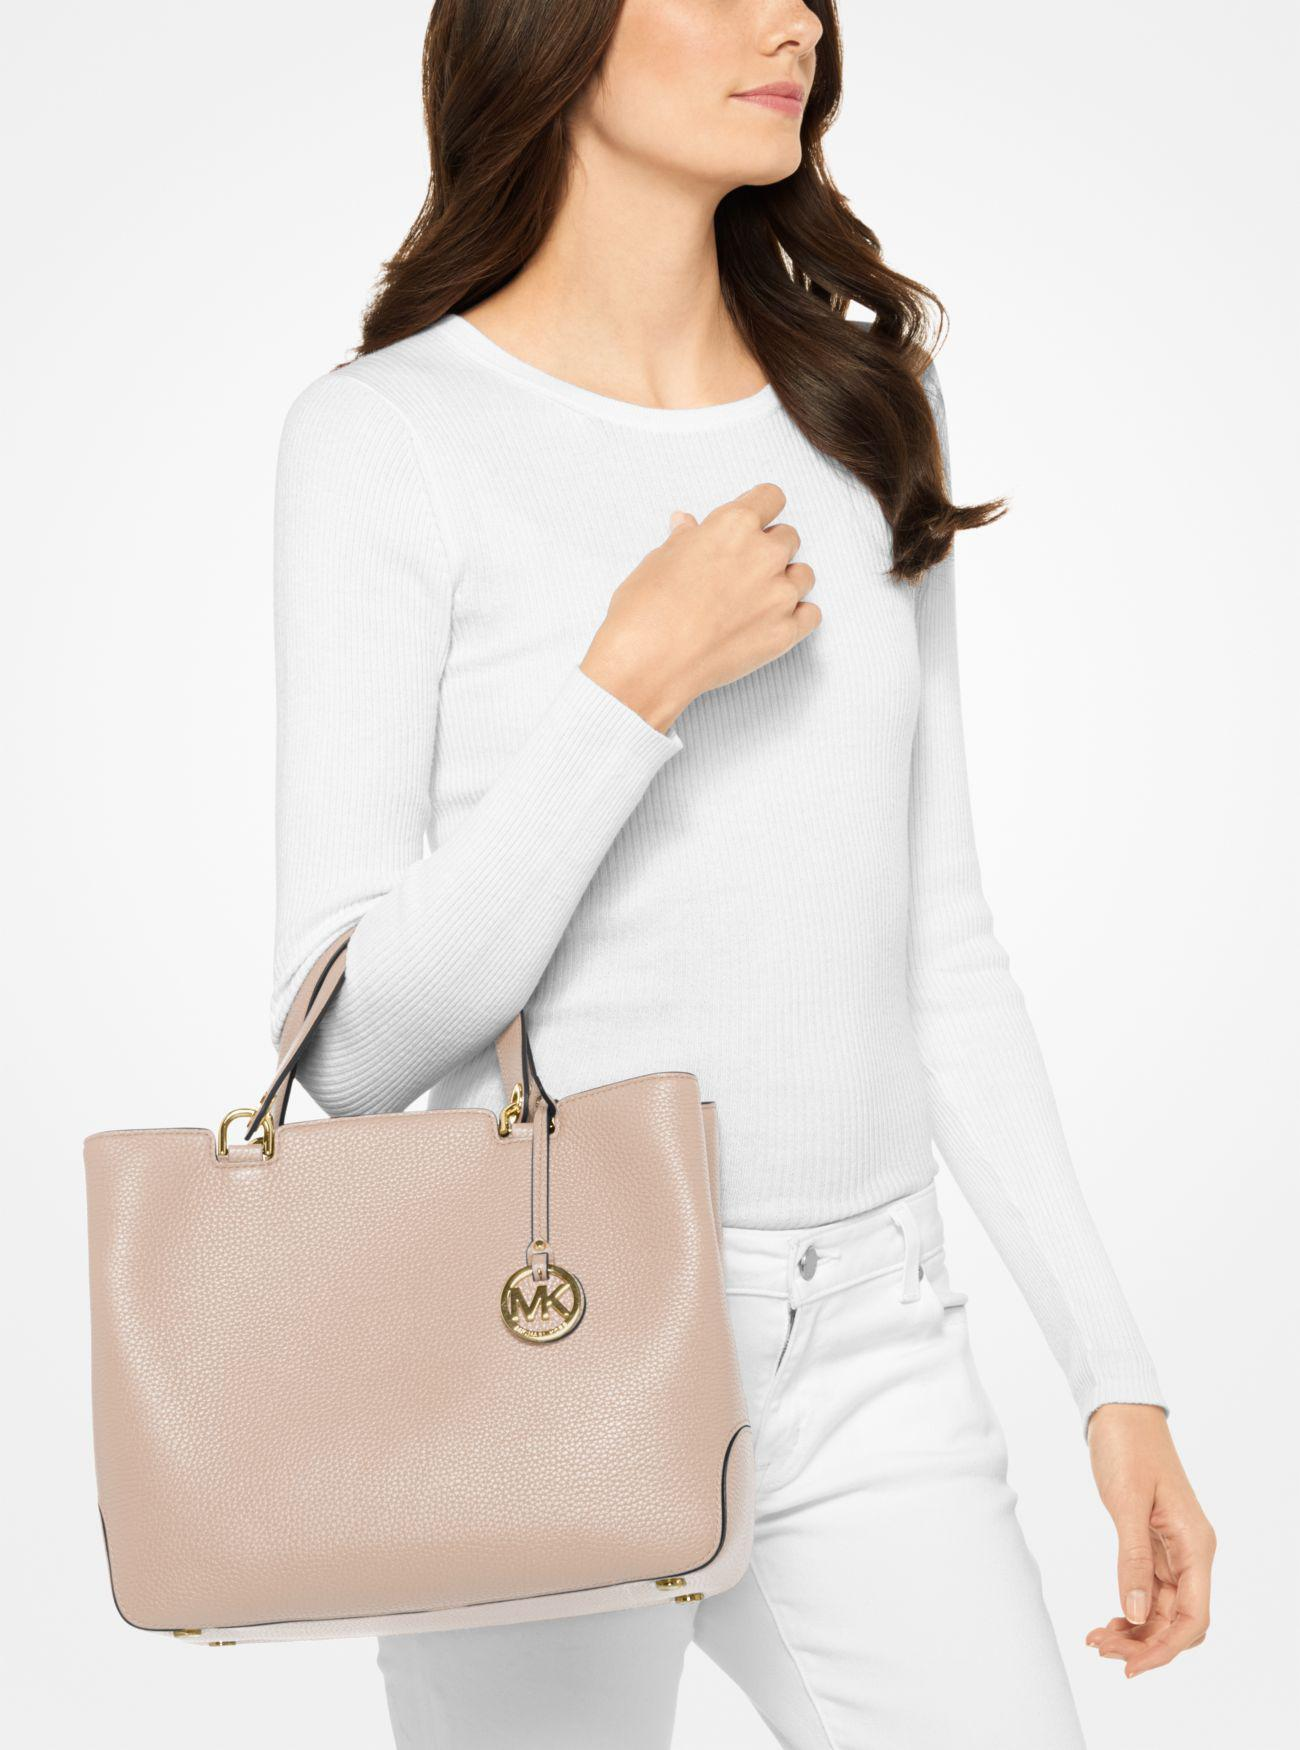 735913f010bdcd Lyst - Michael Kors Anabelle Leather Tote in Pink